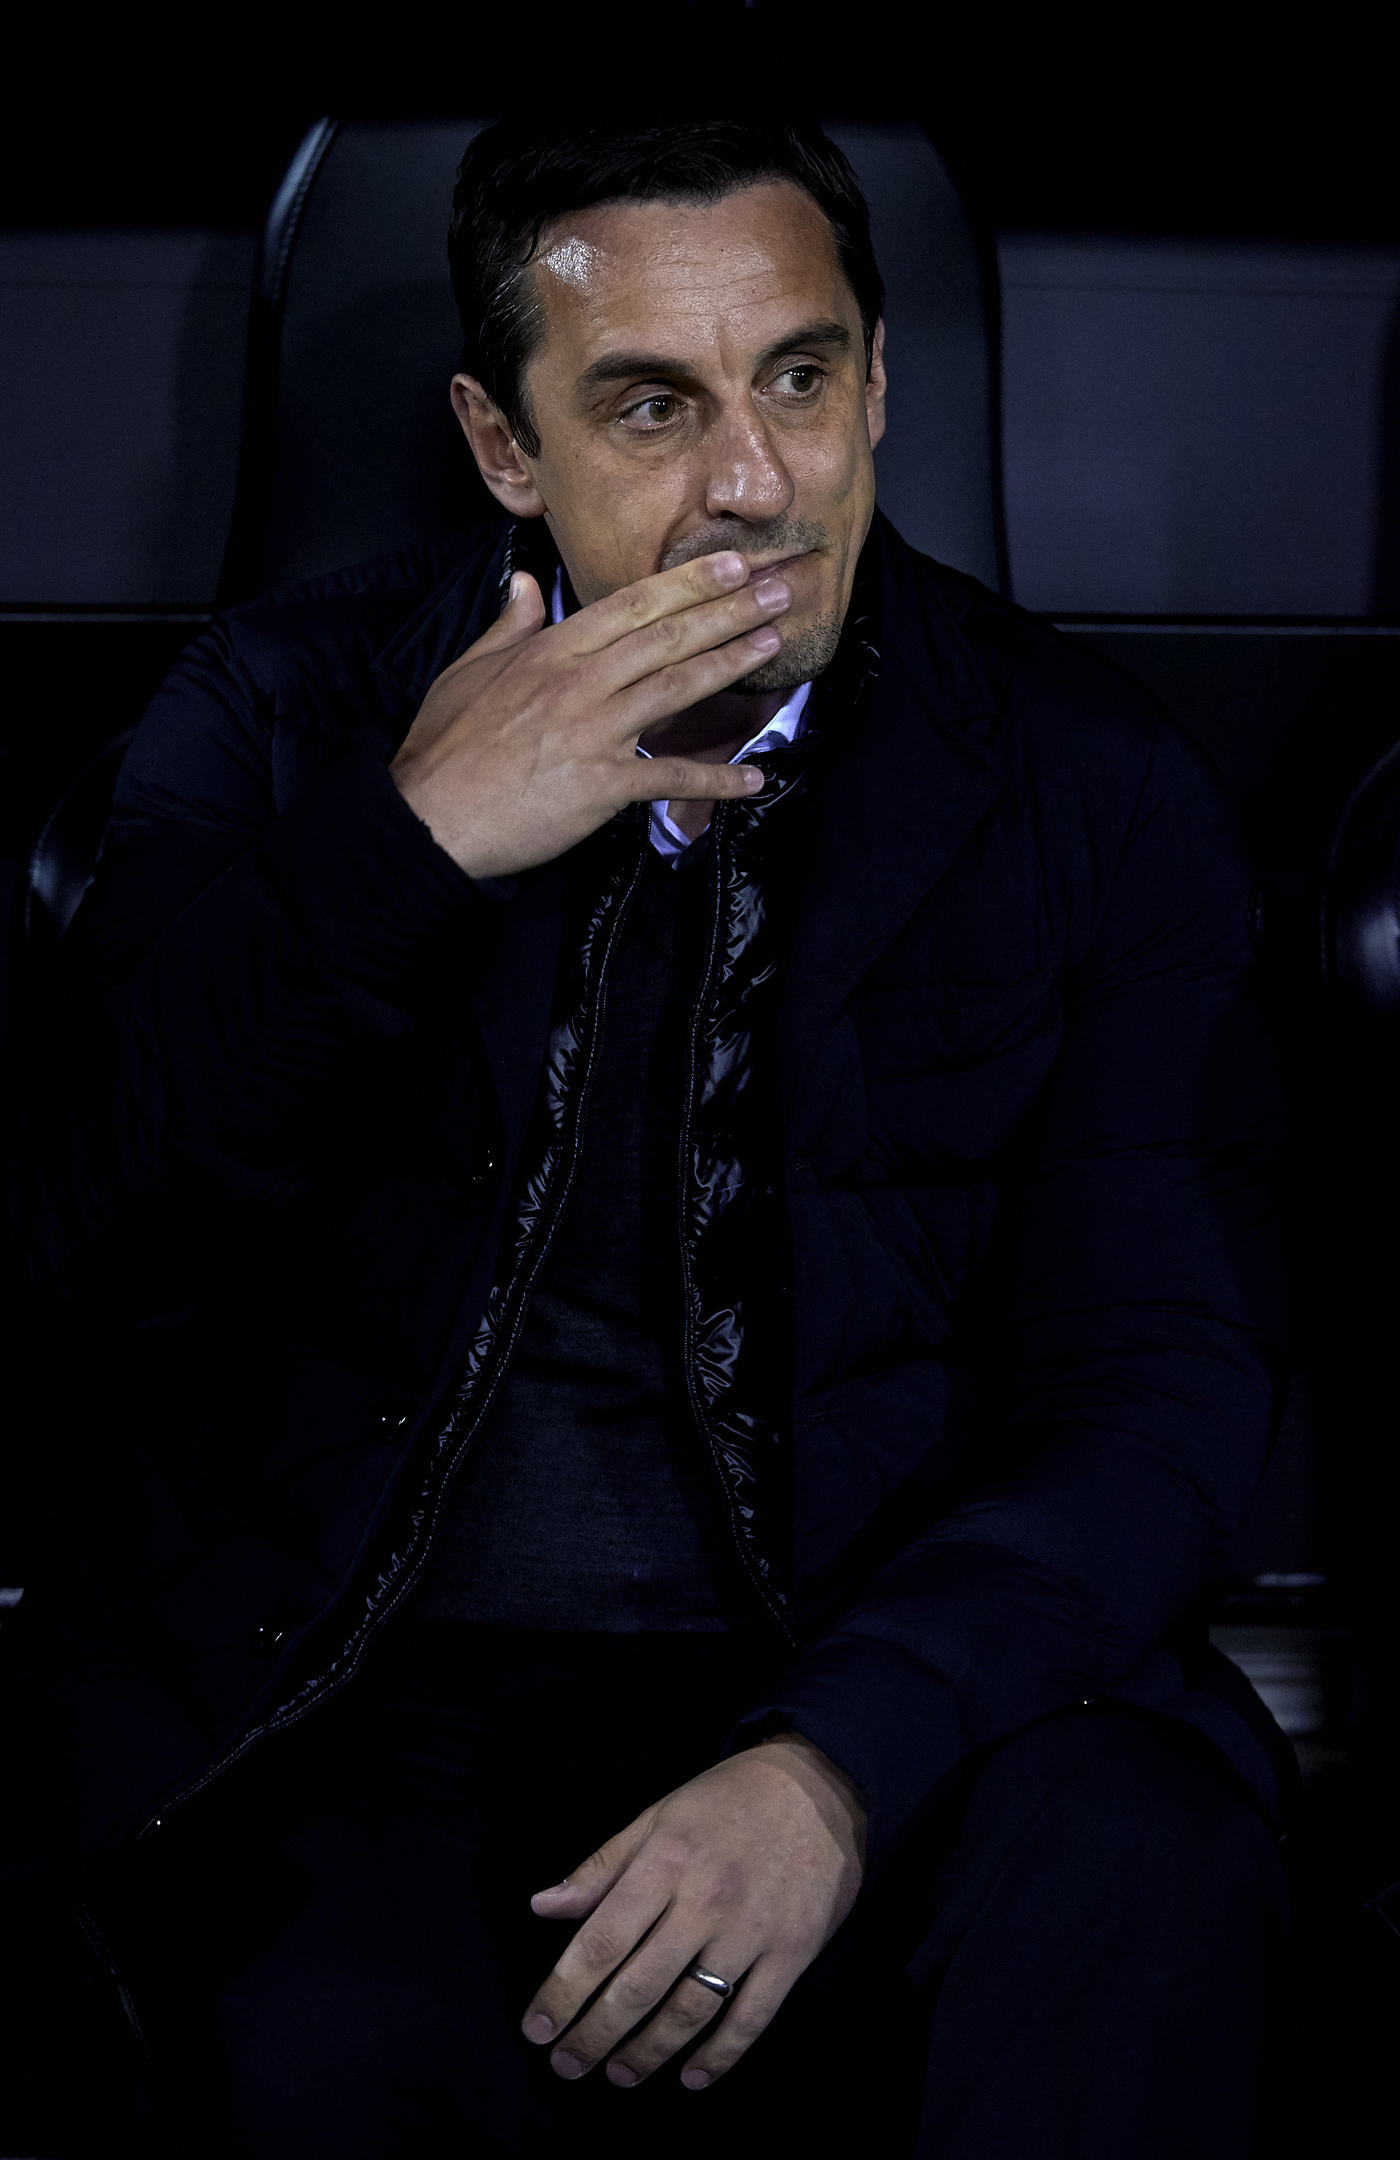 Gary Neville manager of Valencia CF reacts prior to the La Liga match between Valencia CF and Atletico de Madrid at Estadi de Mestalla.